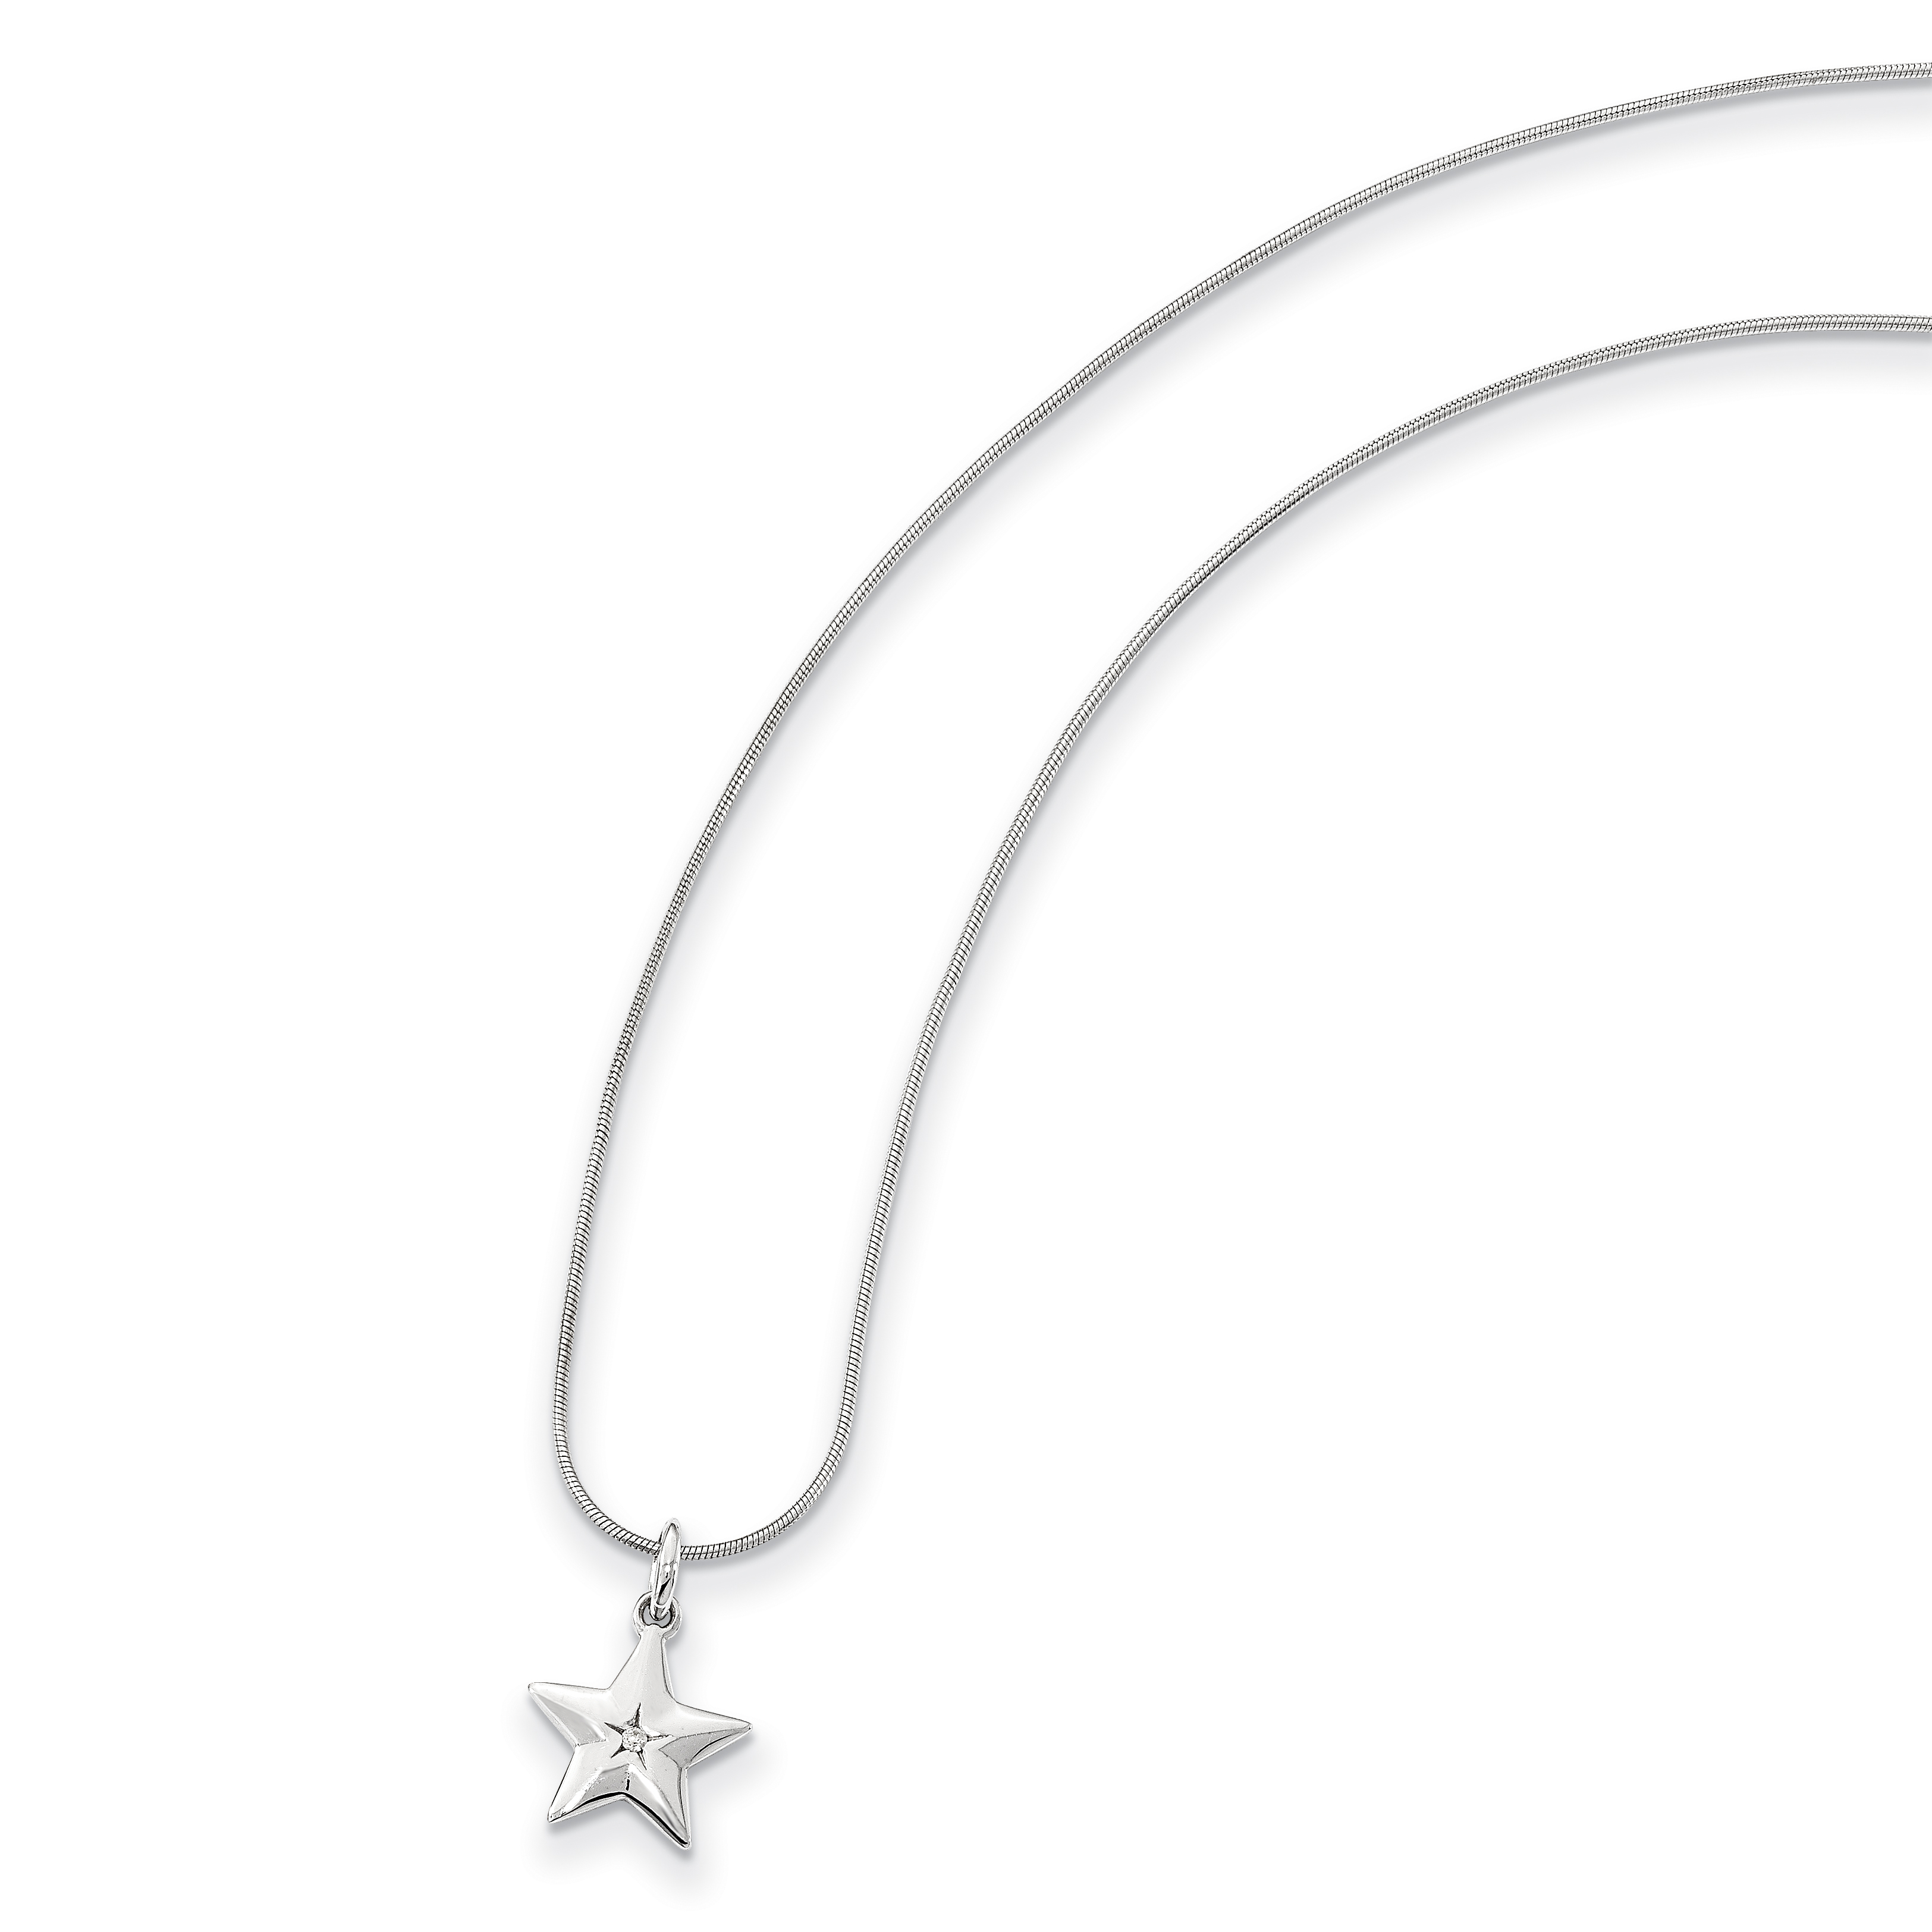 925 Sterling Silver Diamond Star Chain Necklace Pendant Charm Sun Moon Fine Jewelry Gifts For Women For Her - image 3 de 8